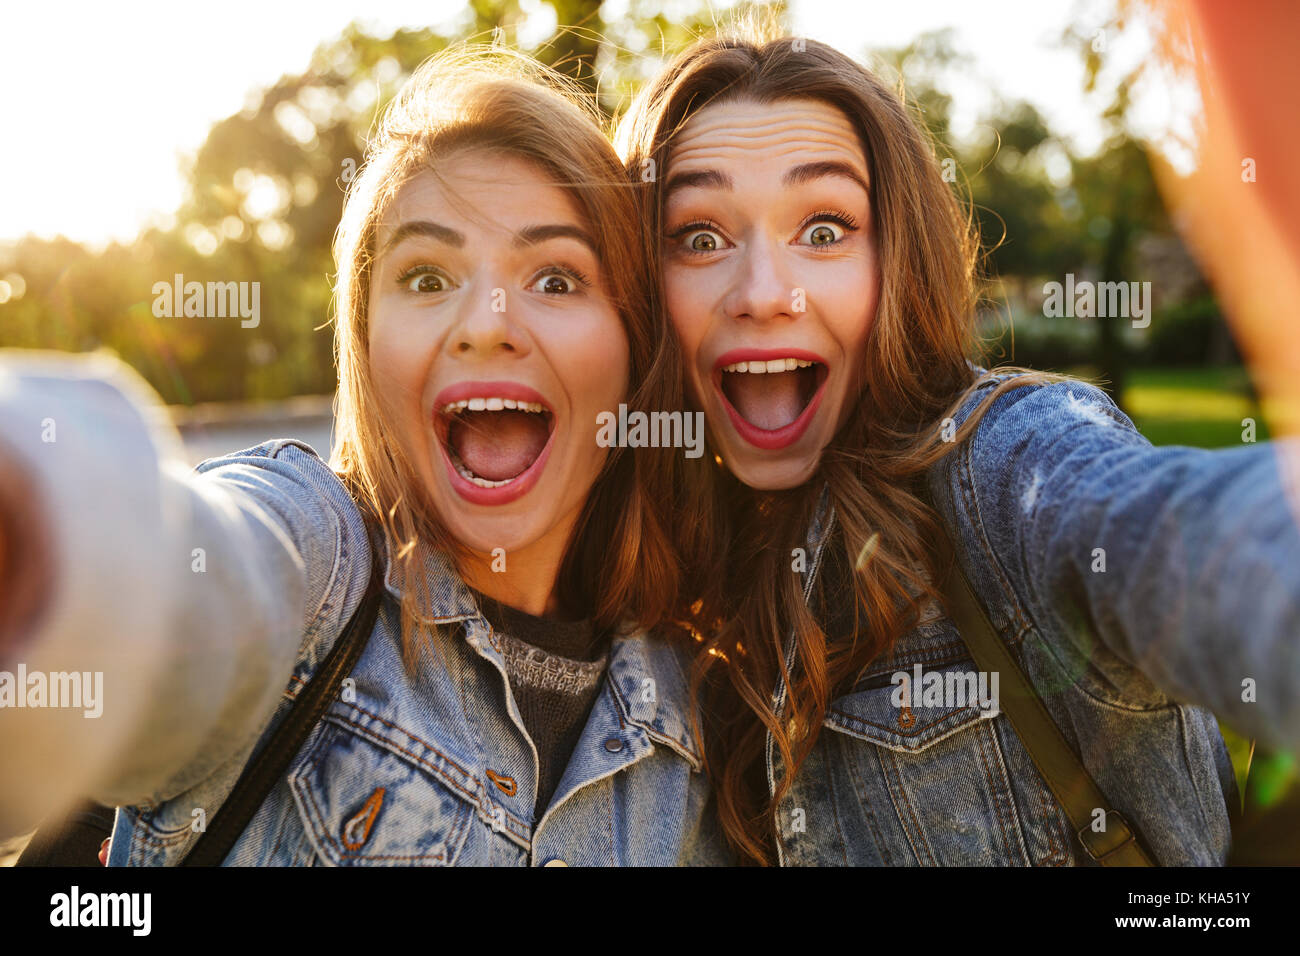 Young teen girl excited